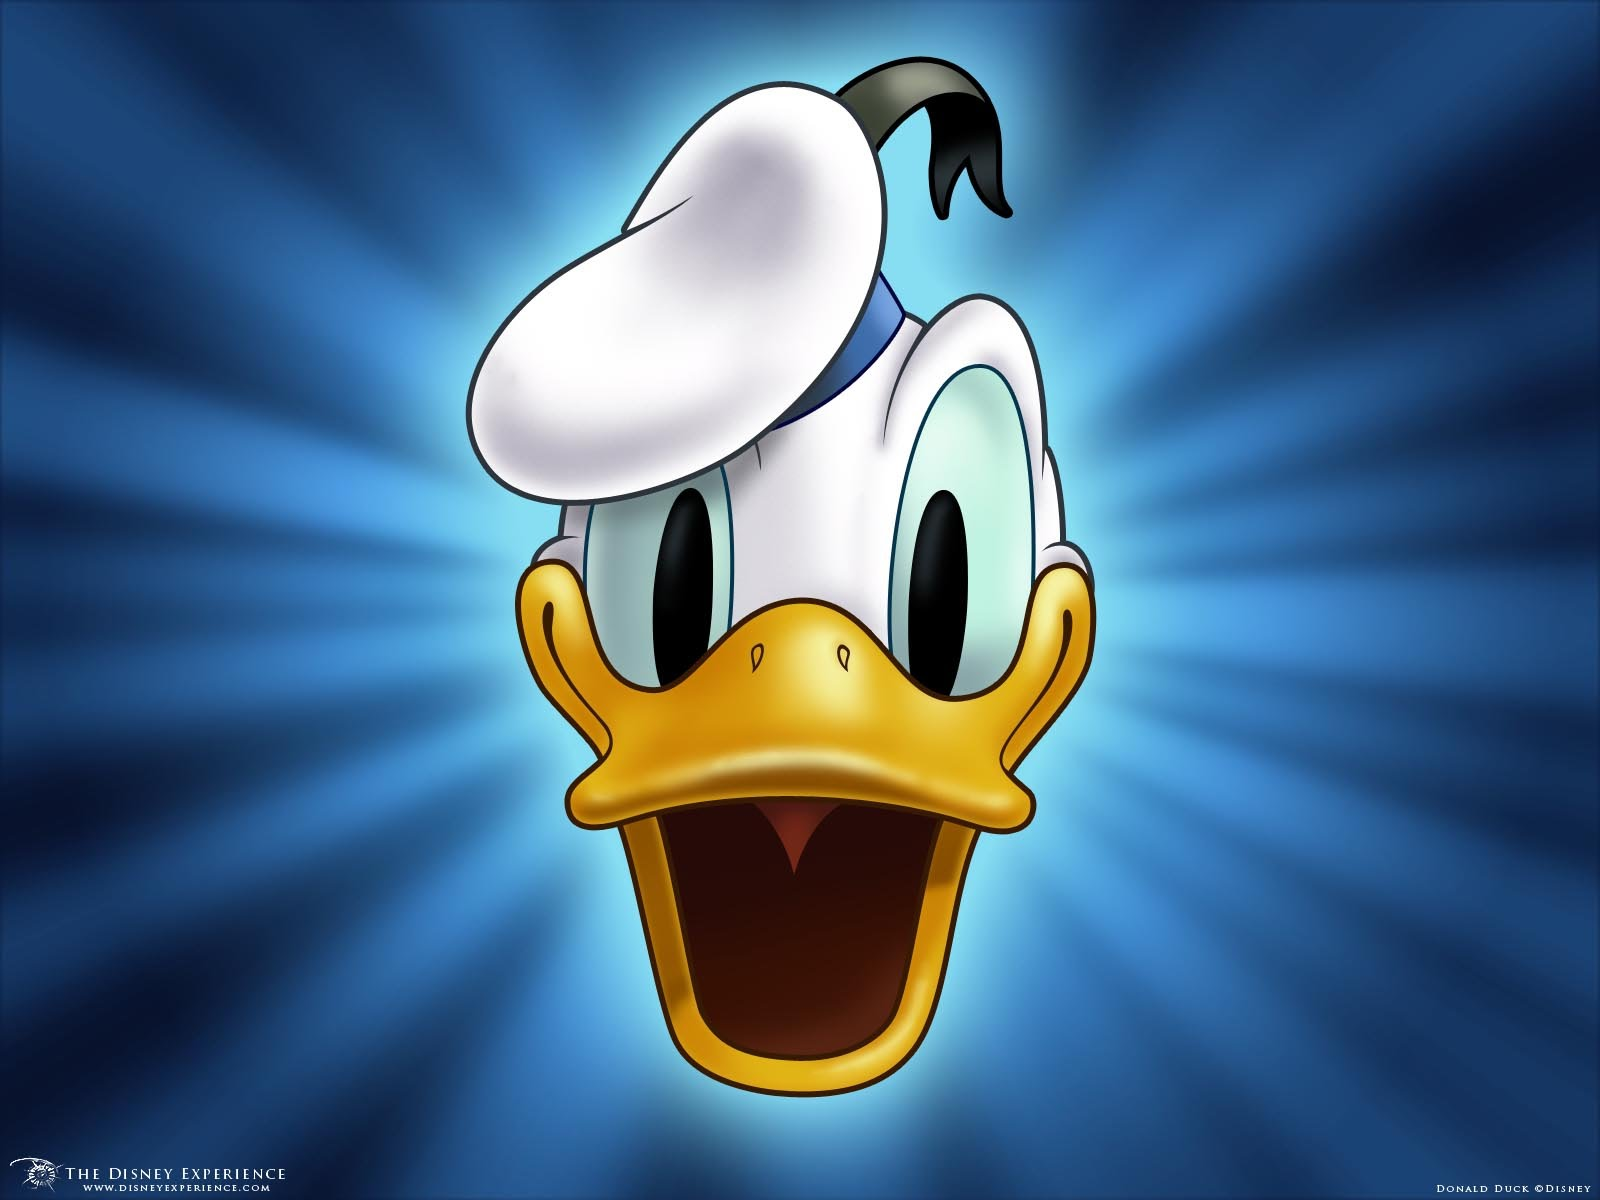 Donald Duck Cartoon